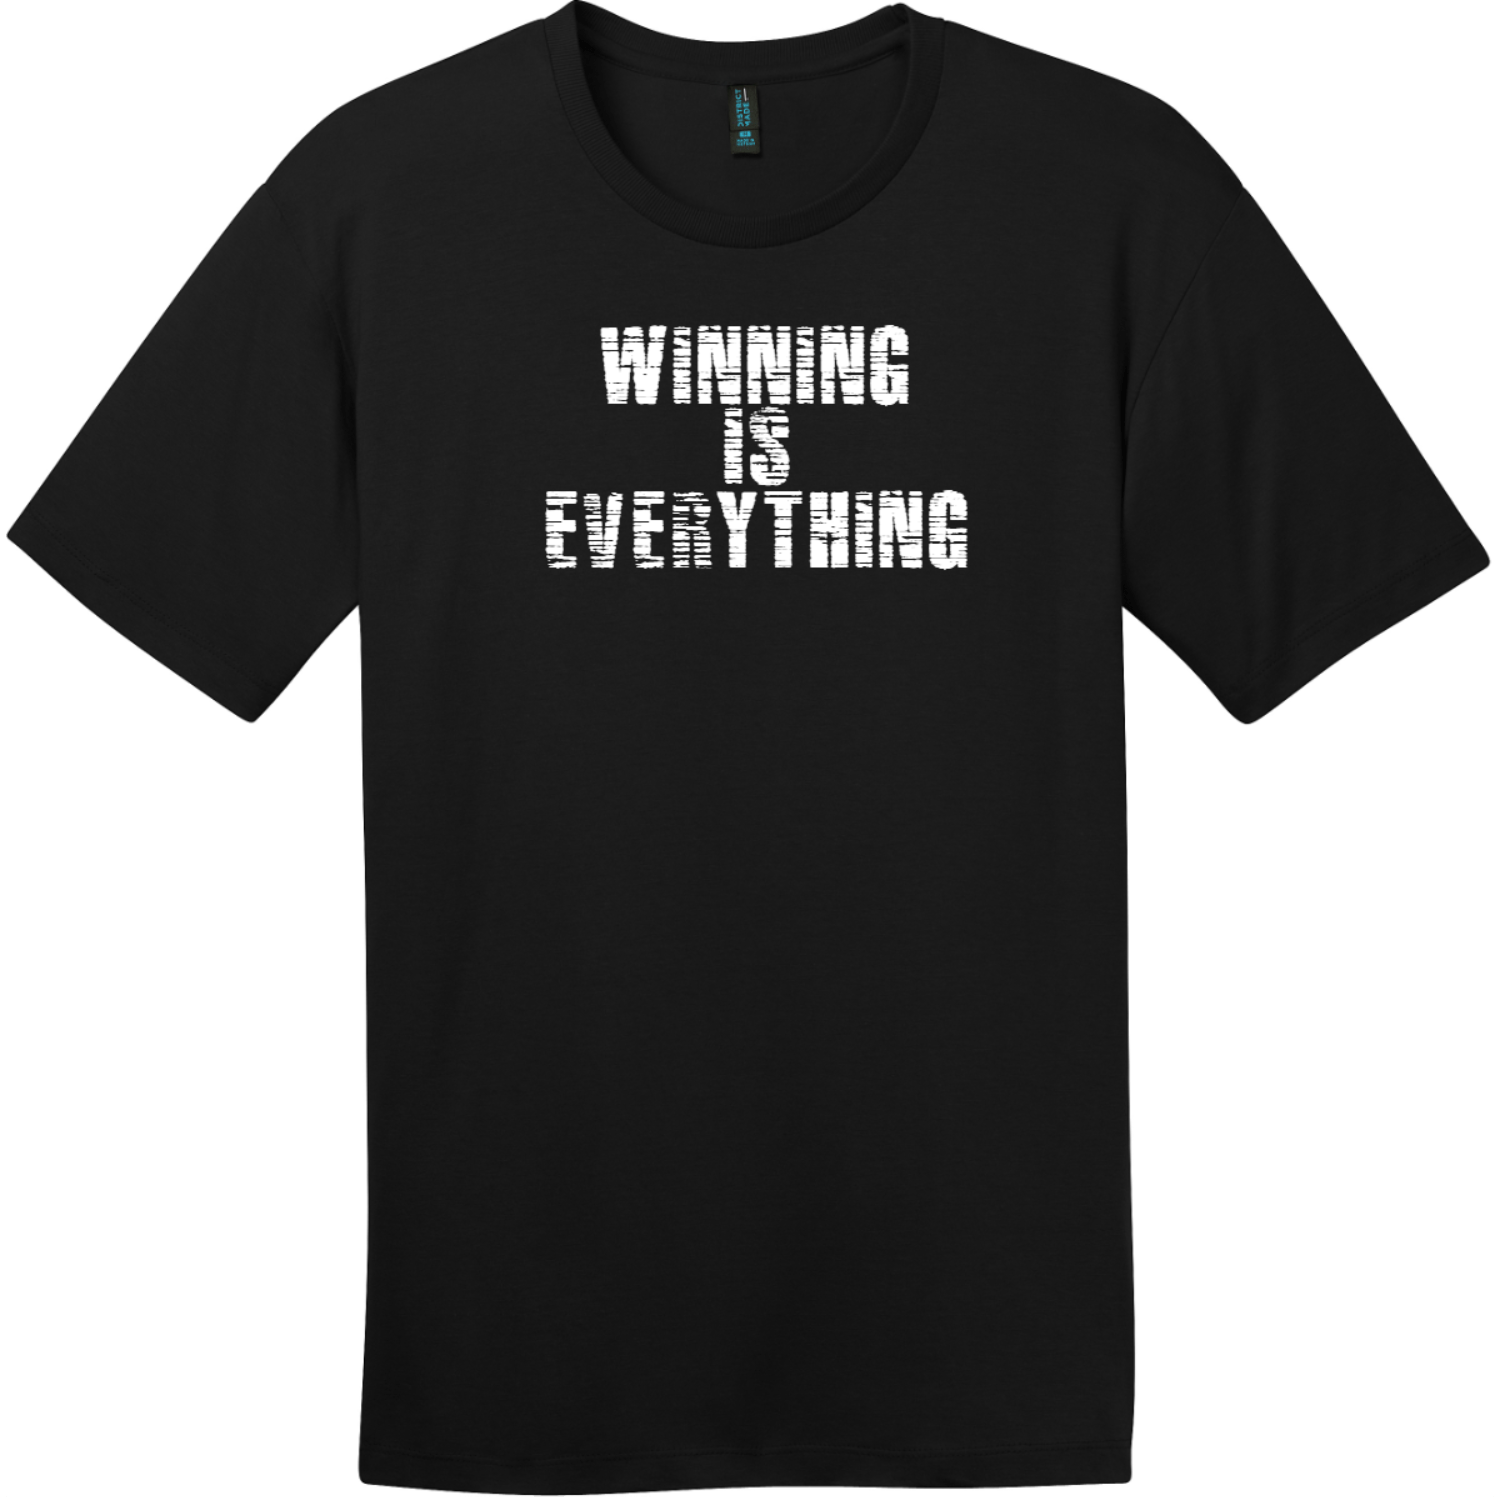 Winning Is Everything T-Shirt Jet Black District Perfect Weight Tee DT104